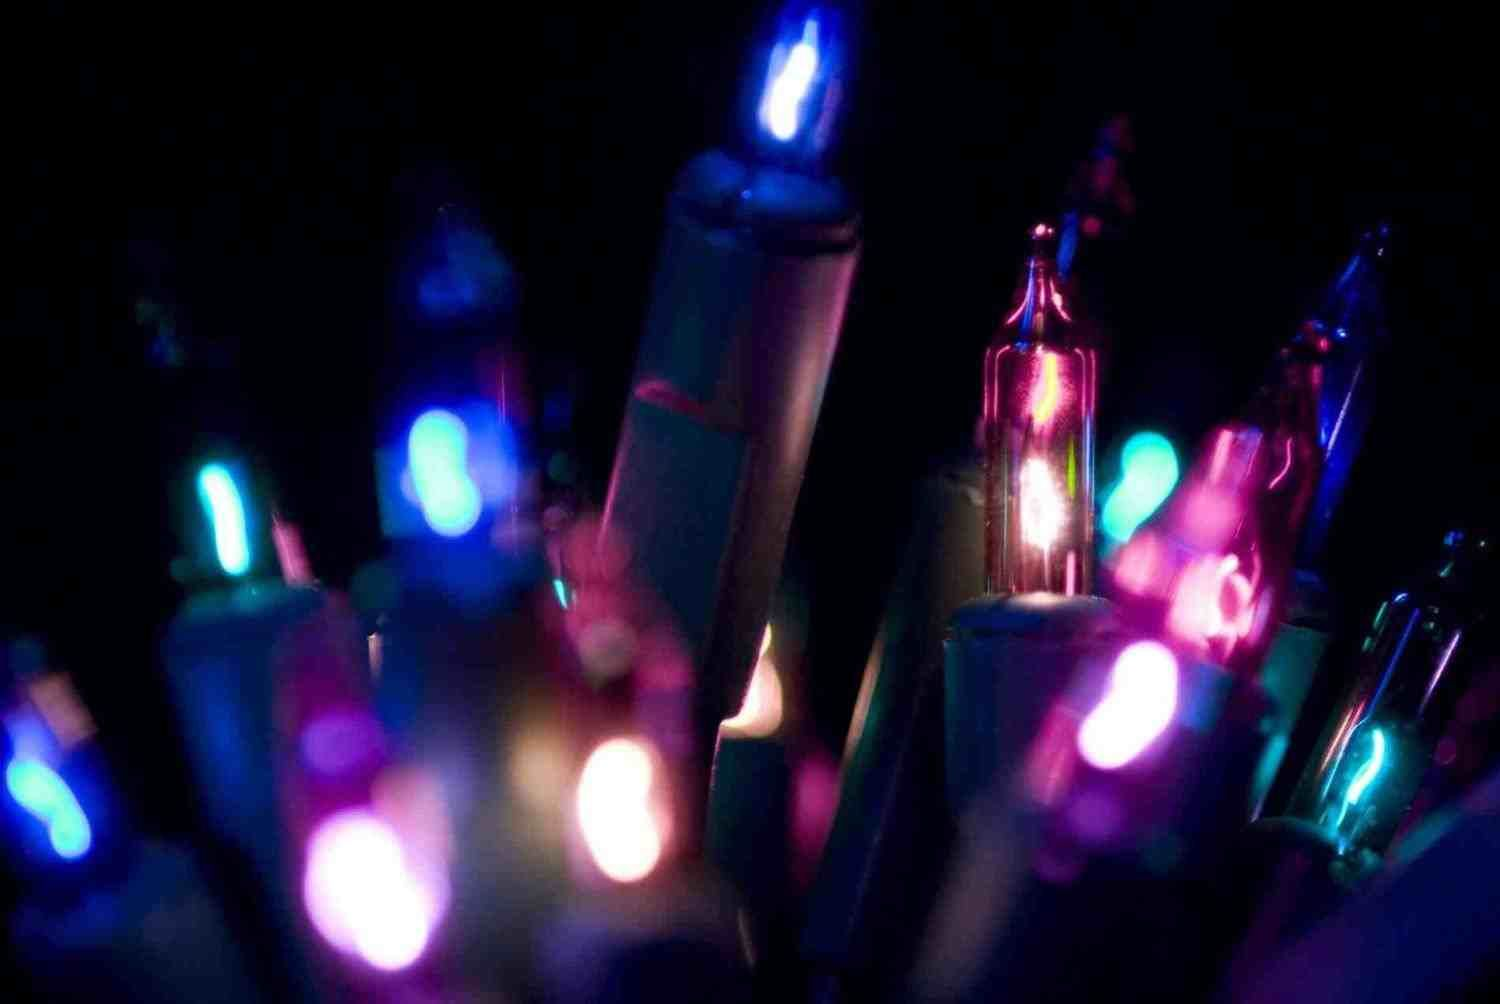 New Post Vintage Christmas Lights Tumblr Background